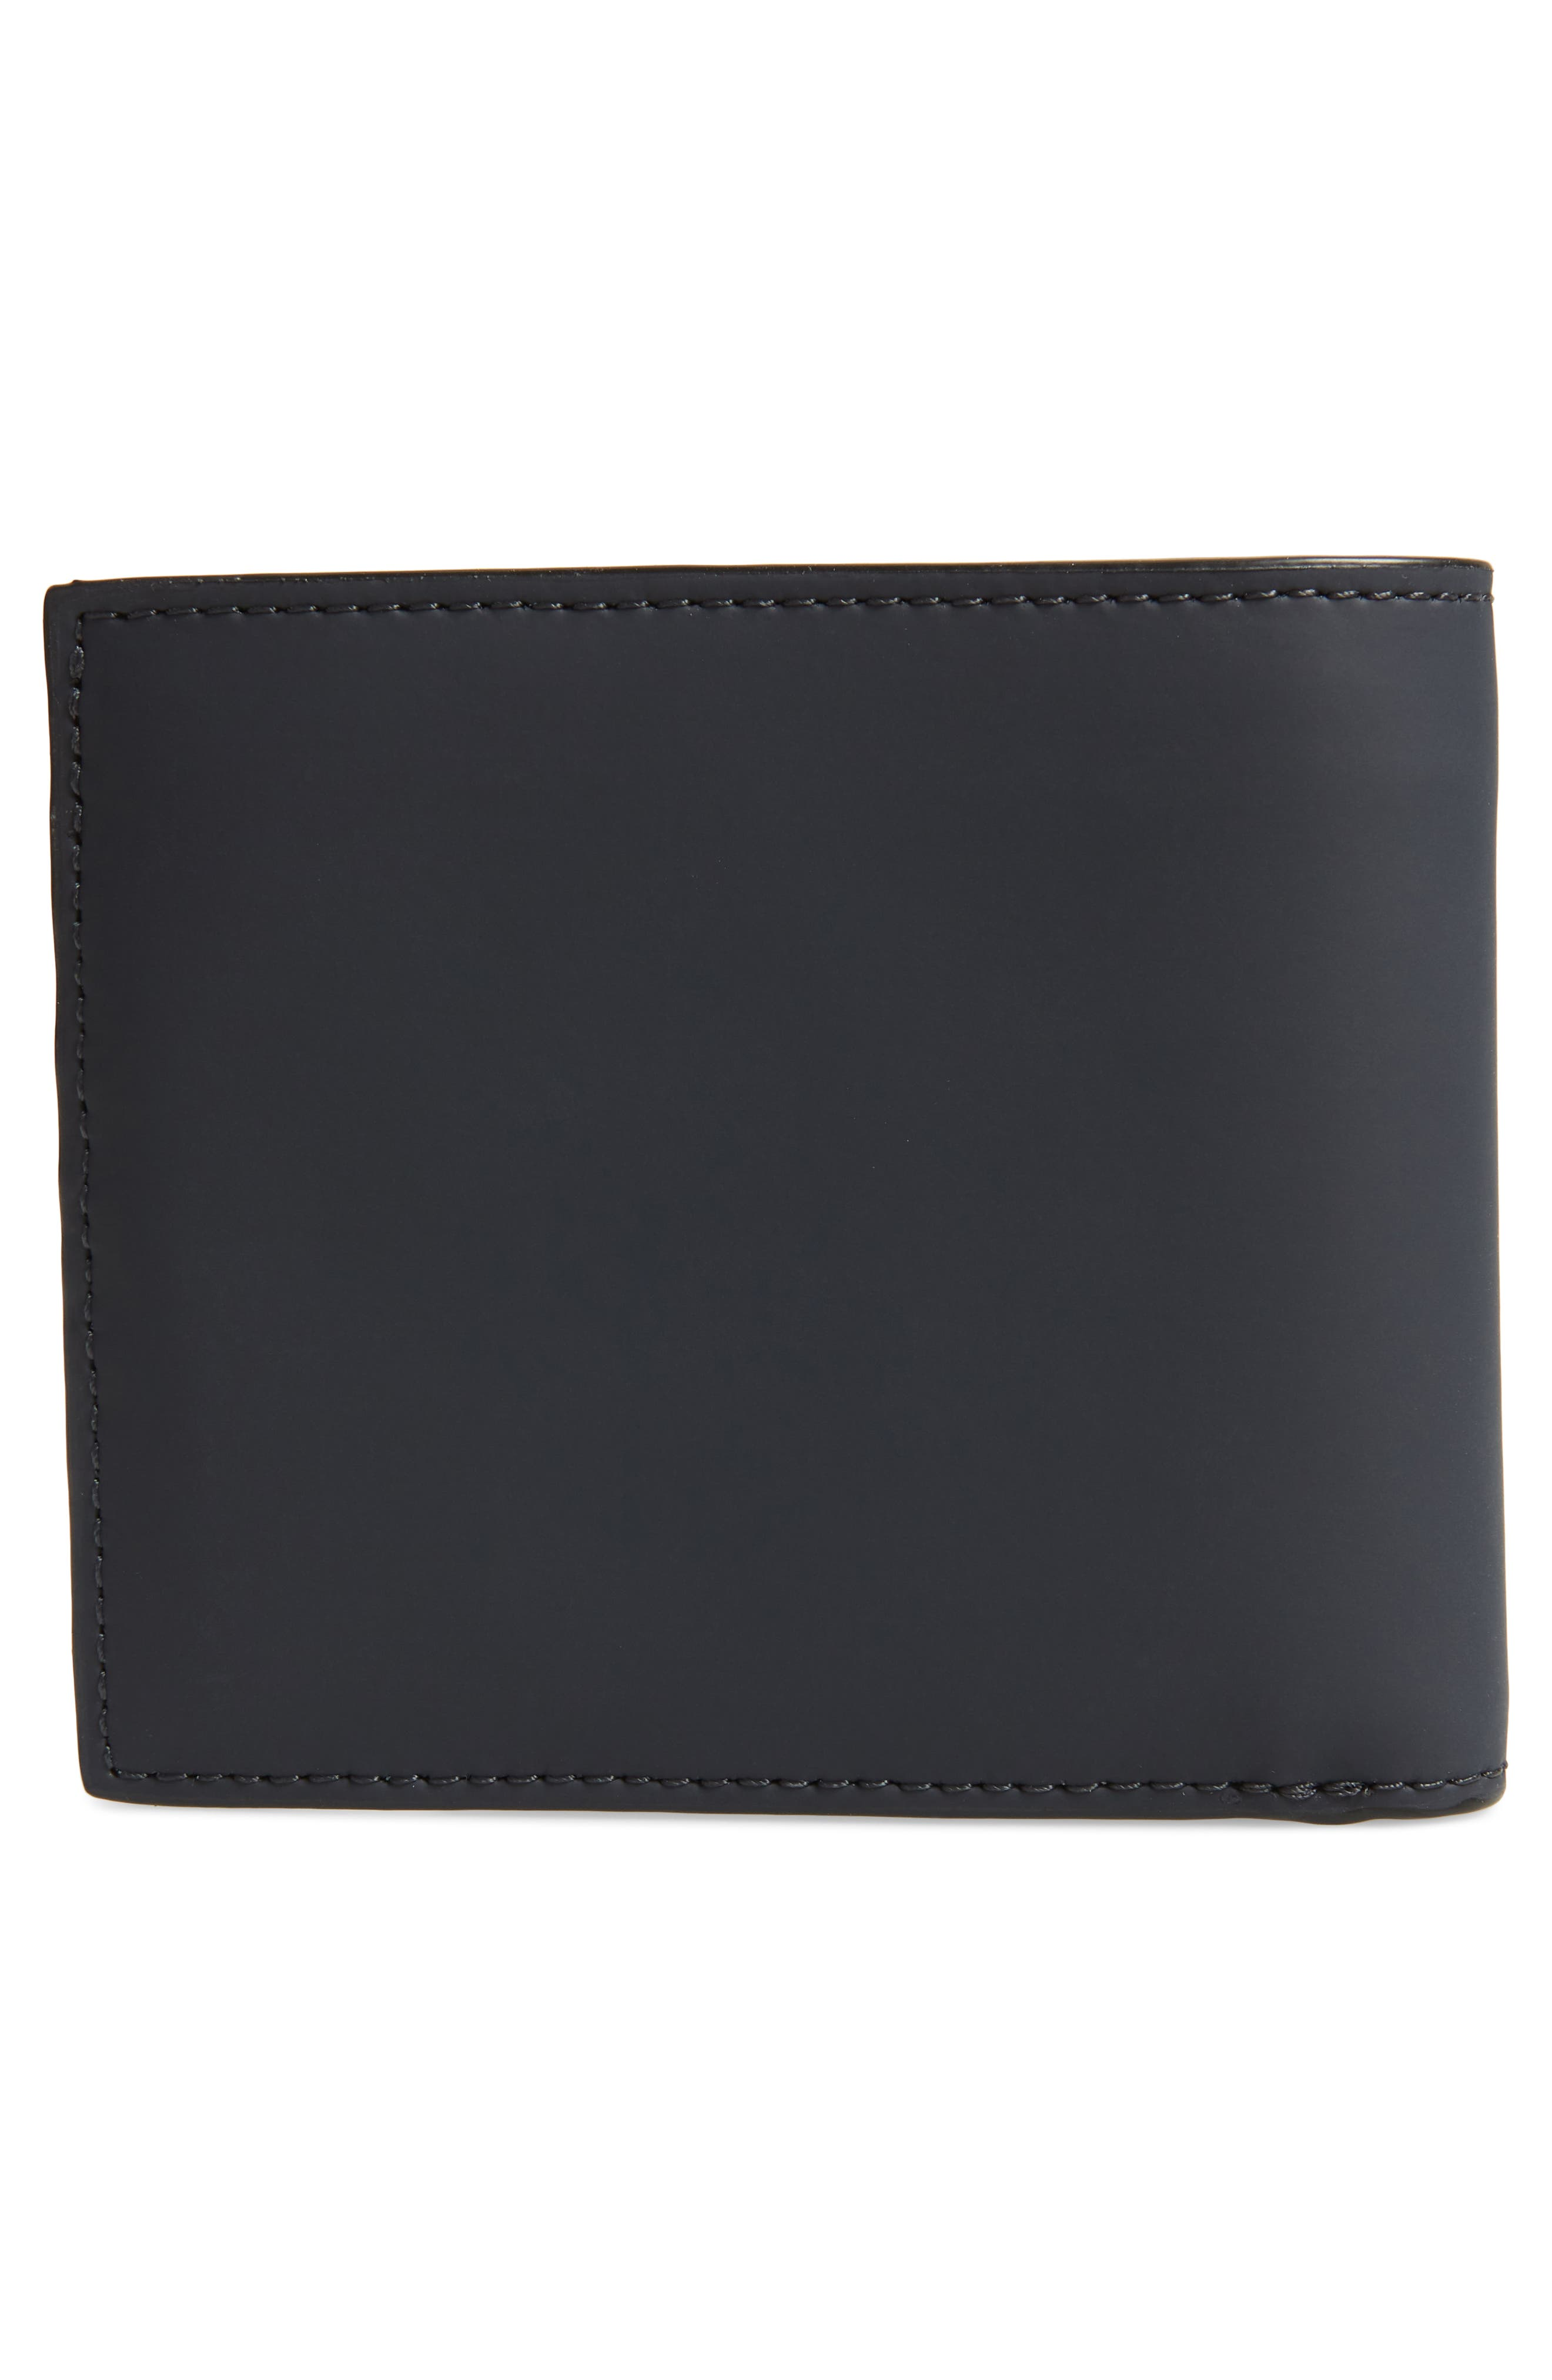 TED BAKER LONDON,                             Rubber Leather Bifold Wallet,                             Alternate thumbnail 3, color,                             NAVY